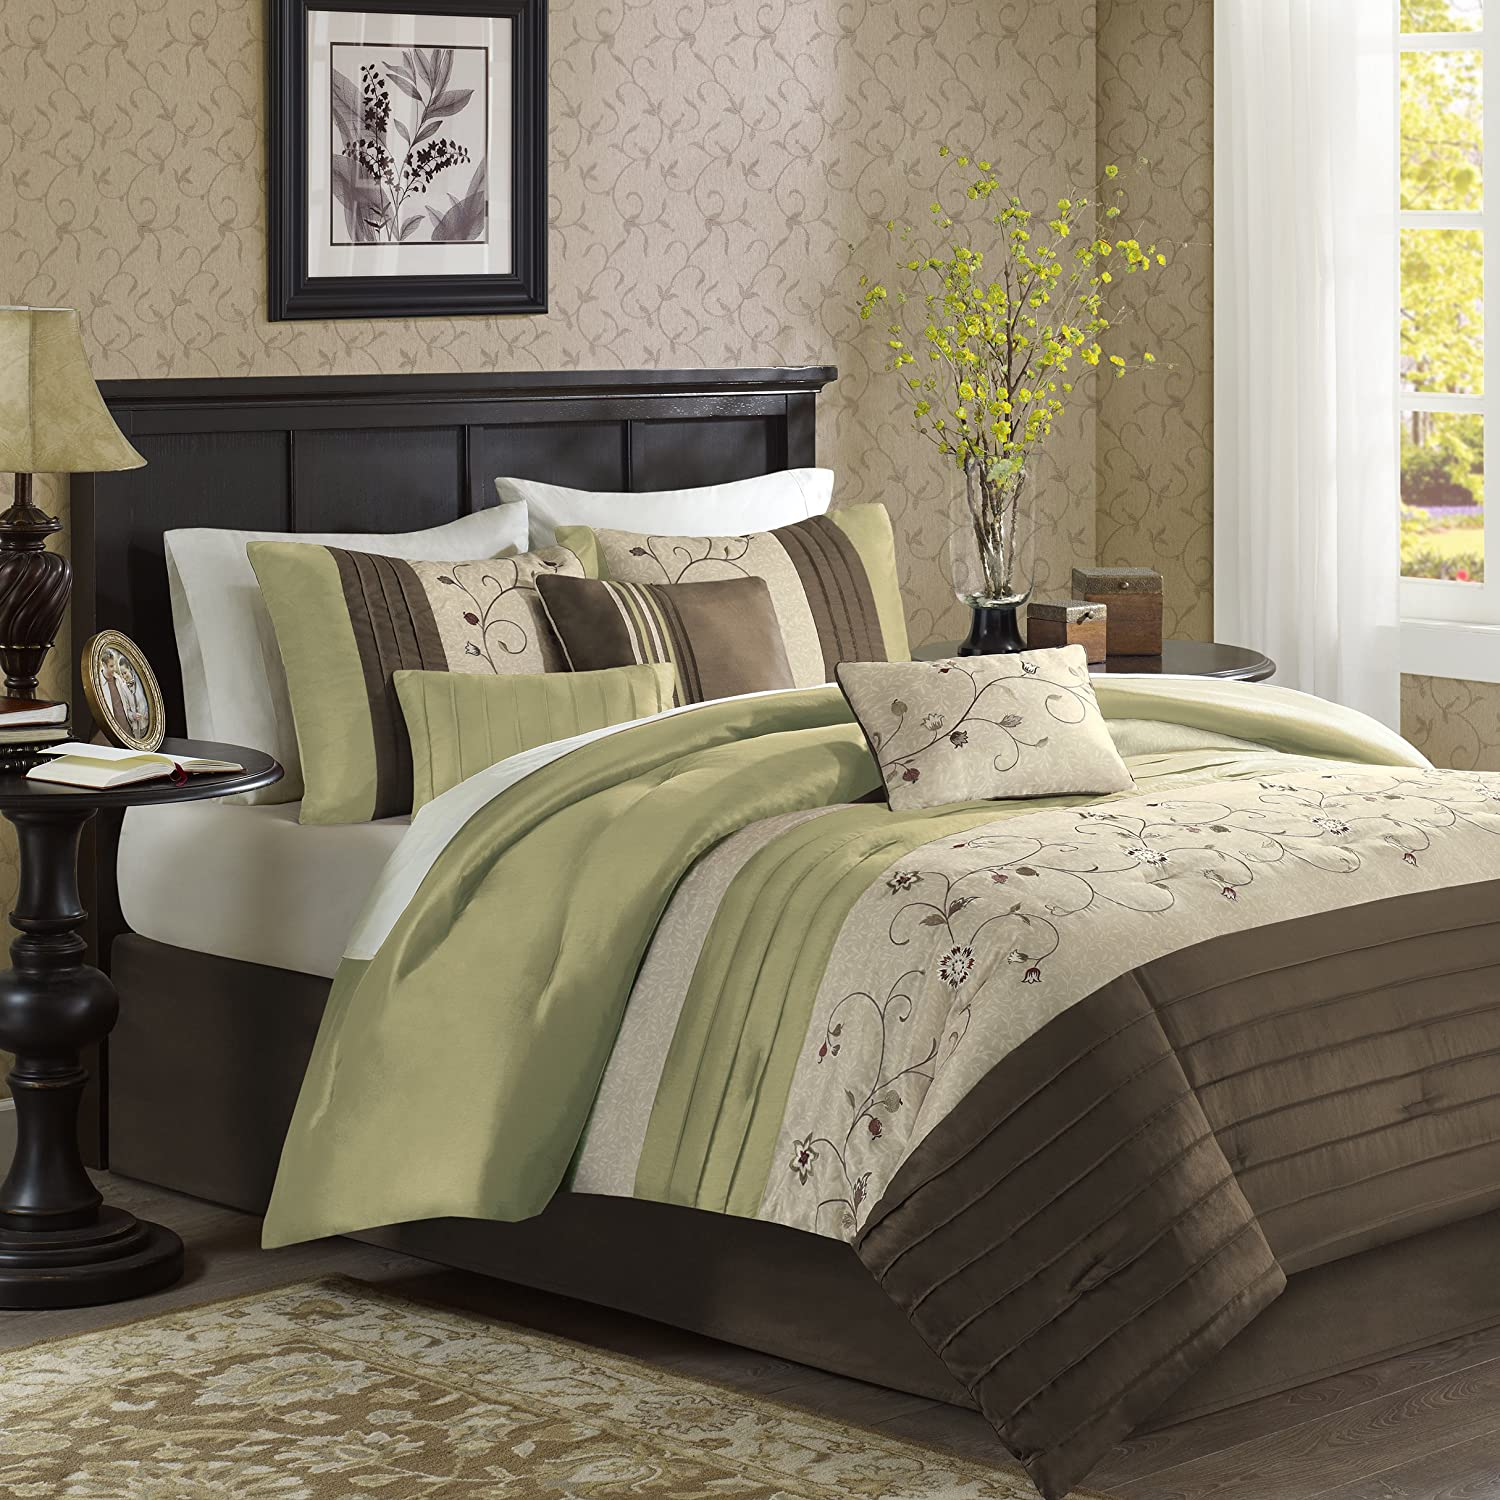 Madison Park Serene 7 Piece Comforter Set, King, Green